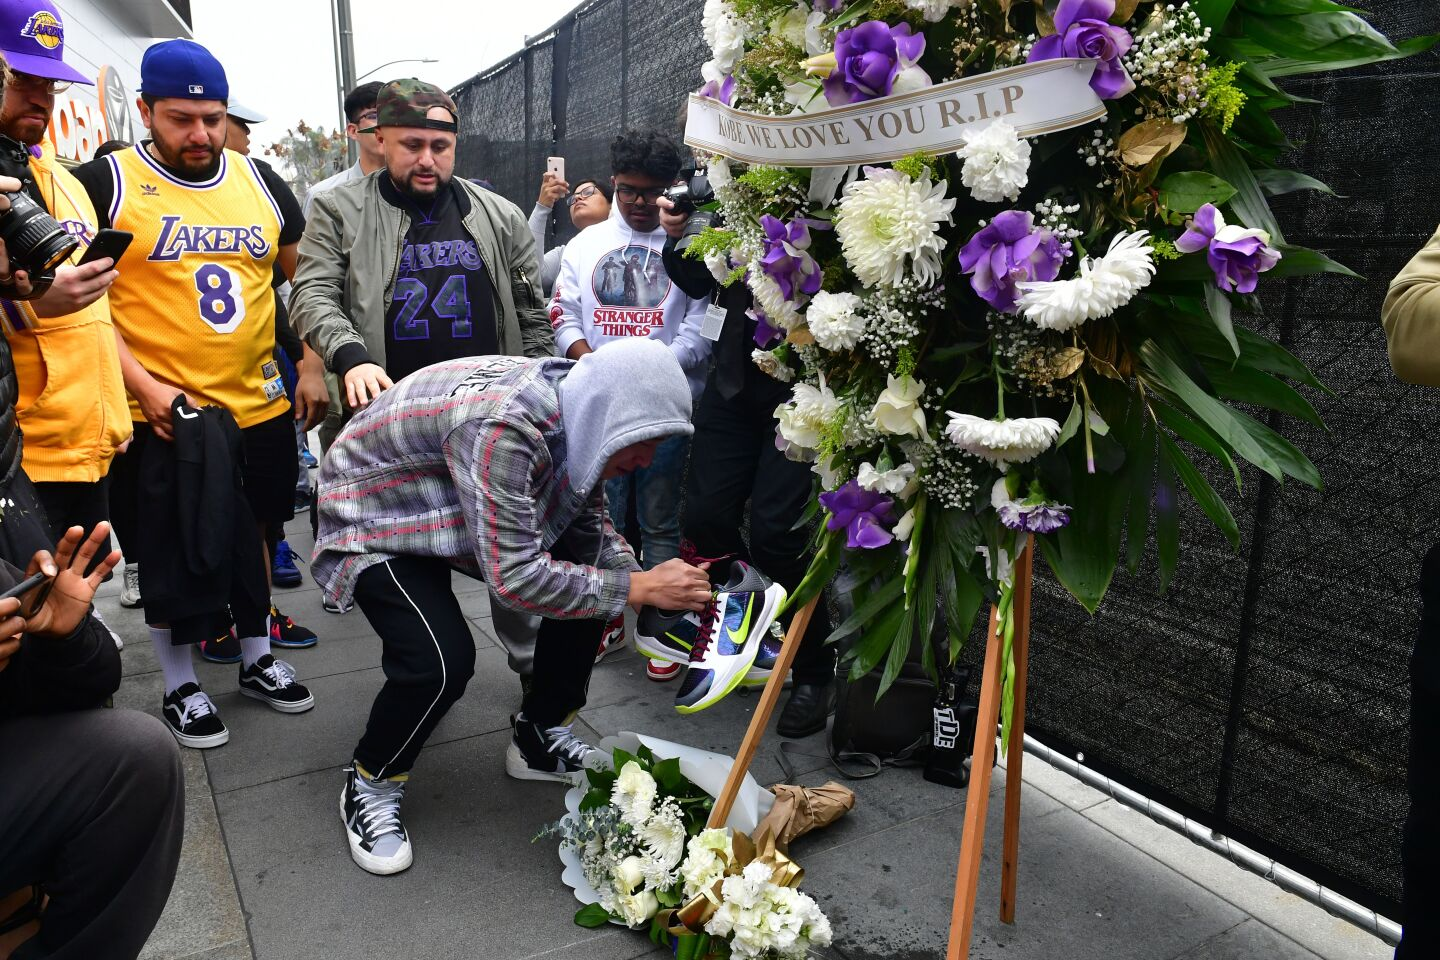 Photos: Fans outside Staples Center mourn death of Kobe Bryant